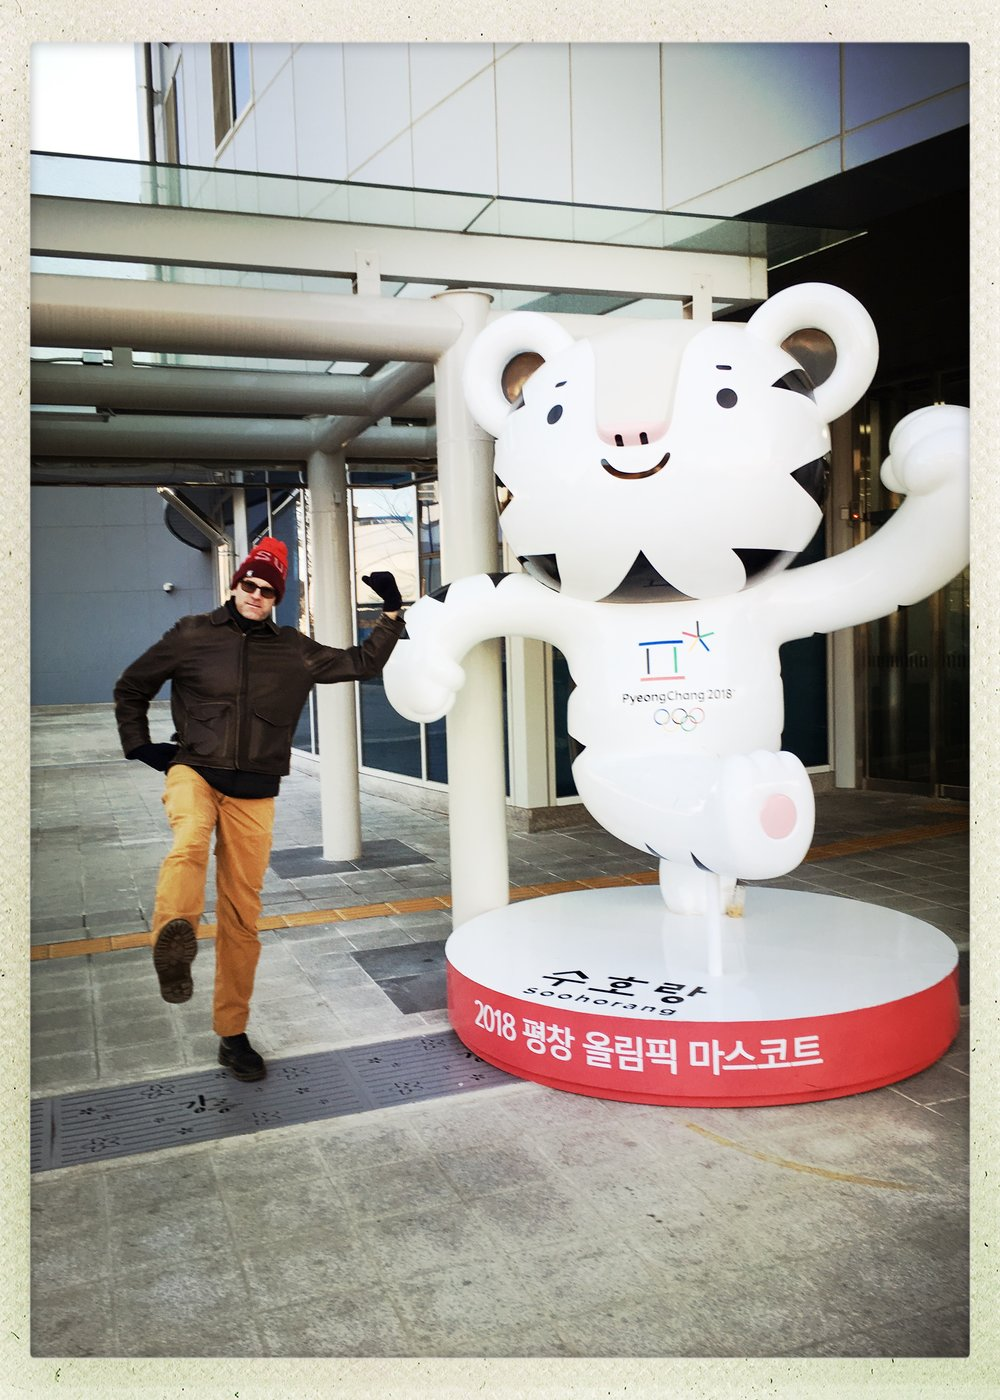 Tiger mascot, Soohorang, knows how much fun curling is.